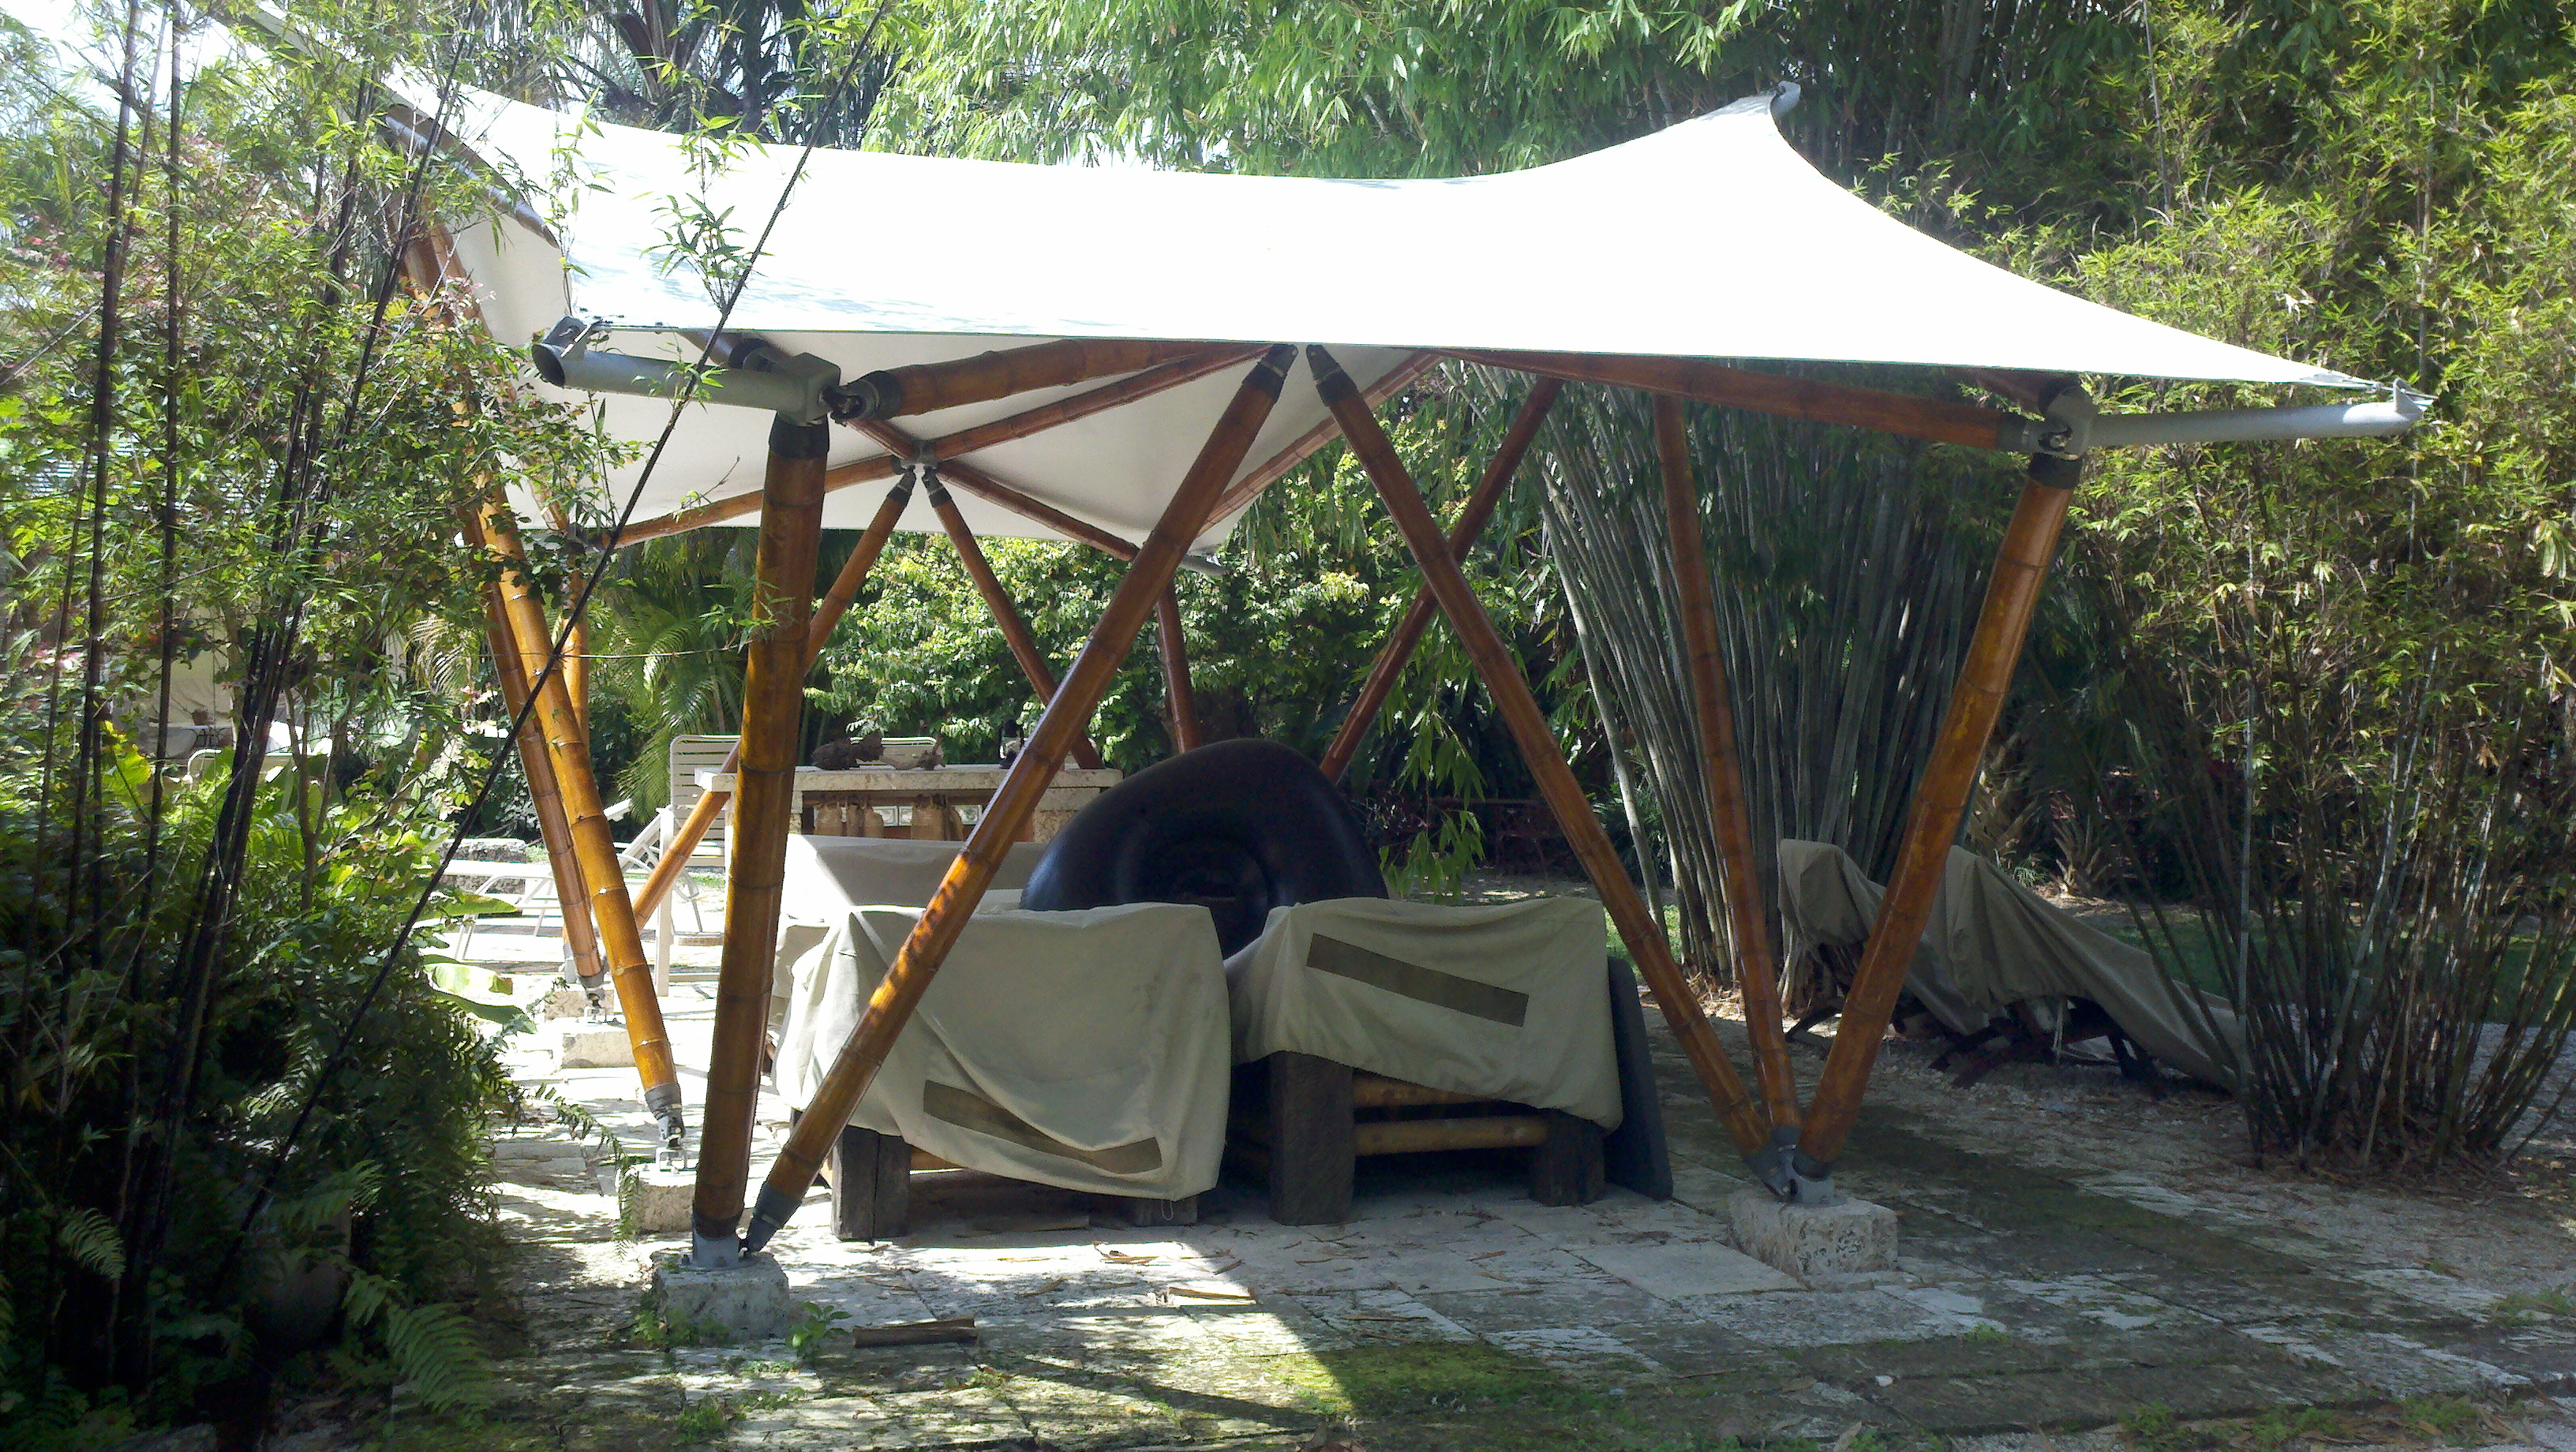 custom bamboo structure South Miami. PrevNext. 123456789101112131415161718192021222324252627282930 & KoolBamboo